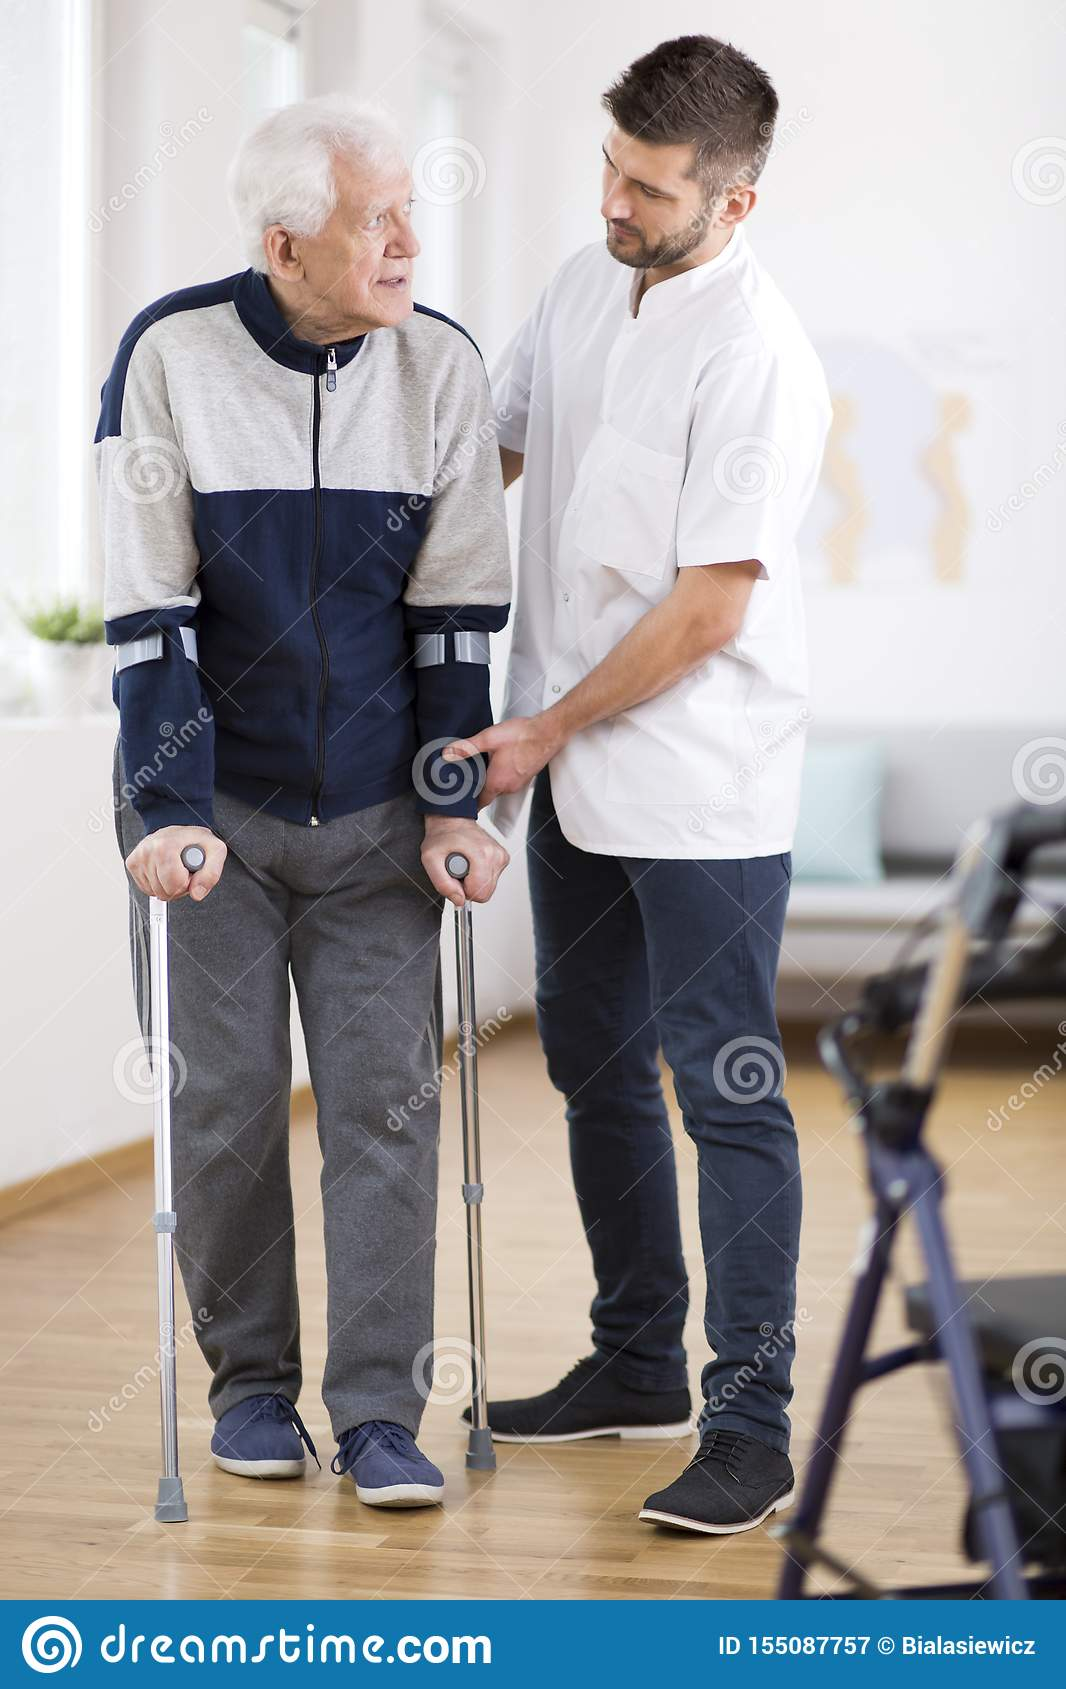 Elderly man walking on crutches and a helpful male nurse supporting him